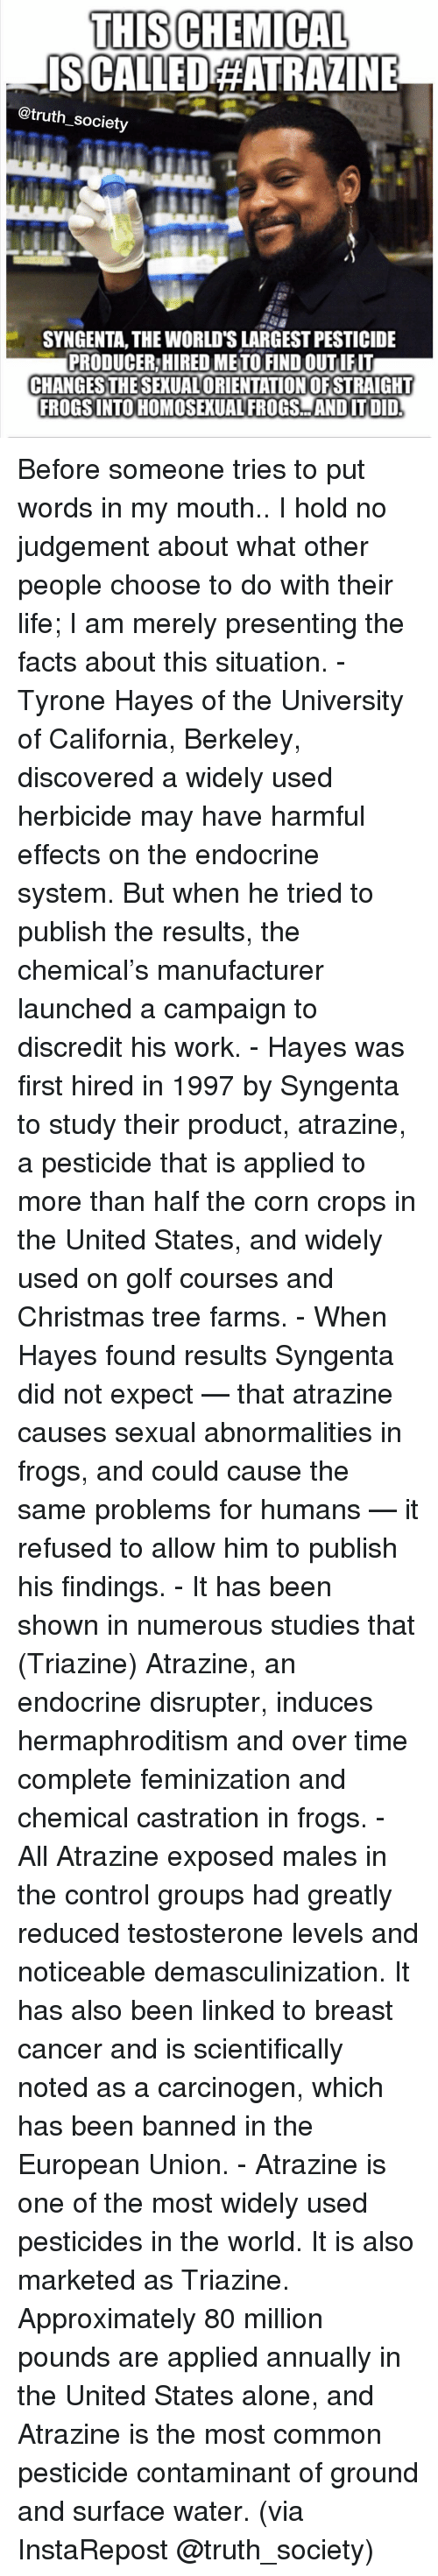 syngenta: THISCHEMICAL  ISCALLEDEATRALINE  @truth society  SYNGENTA, THE WORLD'S LARGEST PESTICIDE  PRODUCER HIREDMETOFINDOUTIFIT  CHANGES THESEXUALORIENTATIONOFSTRAIGHT  FROGSINTOHOMOSEXUAL FROGS AND ITDID Before someone tries to put words in my mouth.. I hold no judgement about what other people choose to do with their life; I am merely presenting the facts about this situation. - Tyrone Hayes of the University of California, Berkeley, discovered a widely used herbicide may have harmful effects on the endocrine system. But when he tried to publish the results, the chemical's manufacturer launched a campaign to discredit his work. - Hayes was first hired in 1997 by Syngenta to study their product, atrazine, a pesticide that is applied to more than half the corn crops in the United States, and widely used on golf courses and Christmas tree farms. - When Hayes found results Syngenta did not expect — that atrazine causes sexual abnormalities in frogs, and could cause the same problems for humans — it refused to allow him to publish his findings. - It has been shown in numerous studies that (Triazine) Atrazine, an endocrine disrupter, induces hermaphroditism and over time complete feminization and chemical castration in frogs. - All Atrazine exposed males in the control groups had greatly reduced testosterone levels and noticeable demasculinization. It has also been linked to breast cancer and is scientifically noted as a carcinogen, which has been banned in the European Union. - Atrazine is one of the most widely used pesticides in the world. It is also marketed as Triazine. Approximately 80 million pounds are applied annually in the United States alone, and Atrazine is the most common pesticide contaminant of ground and surface water. (via InstaRepost @truth_society)